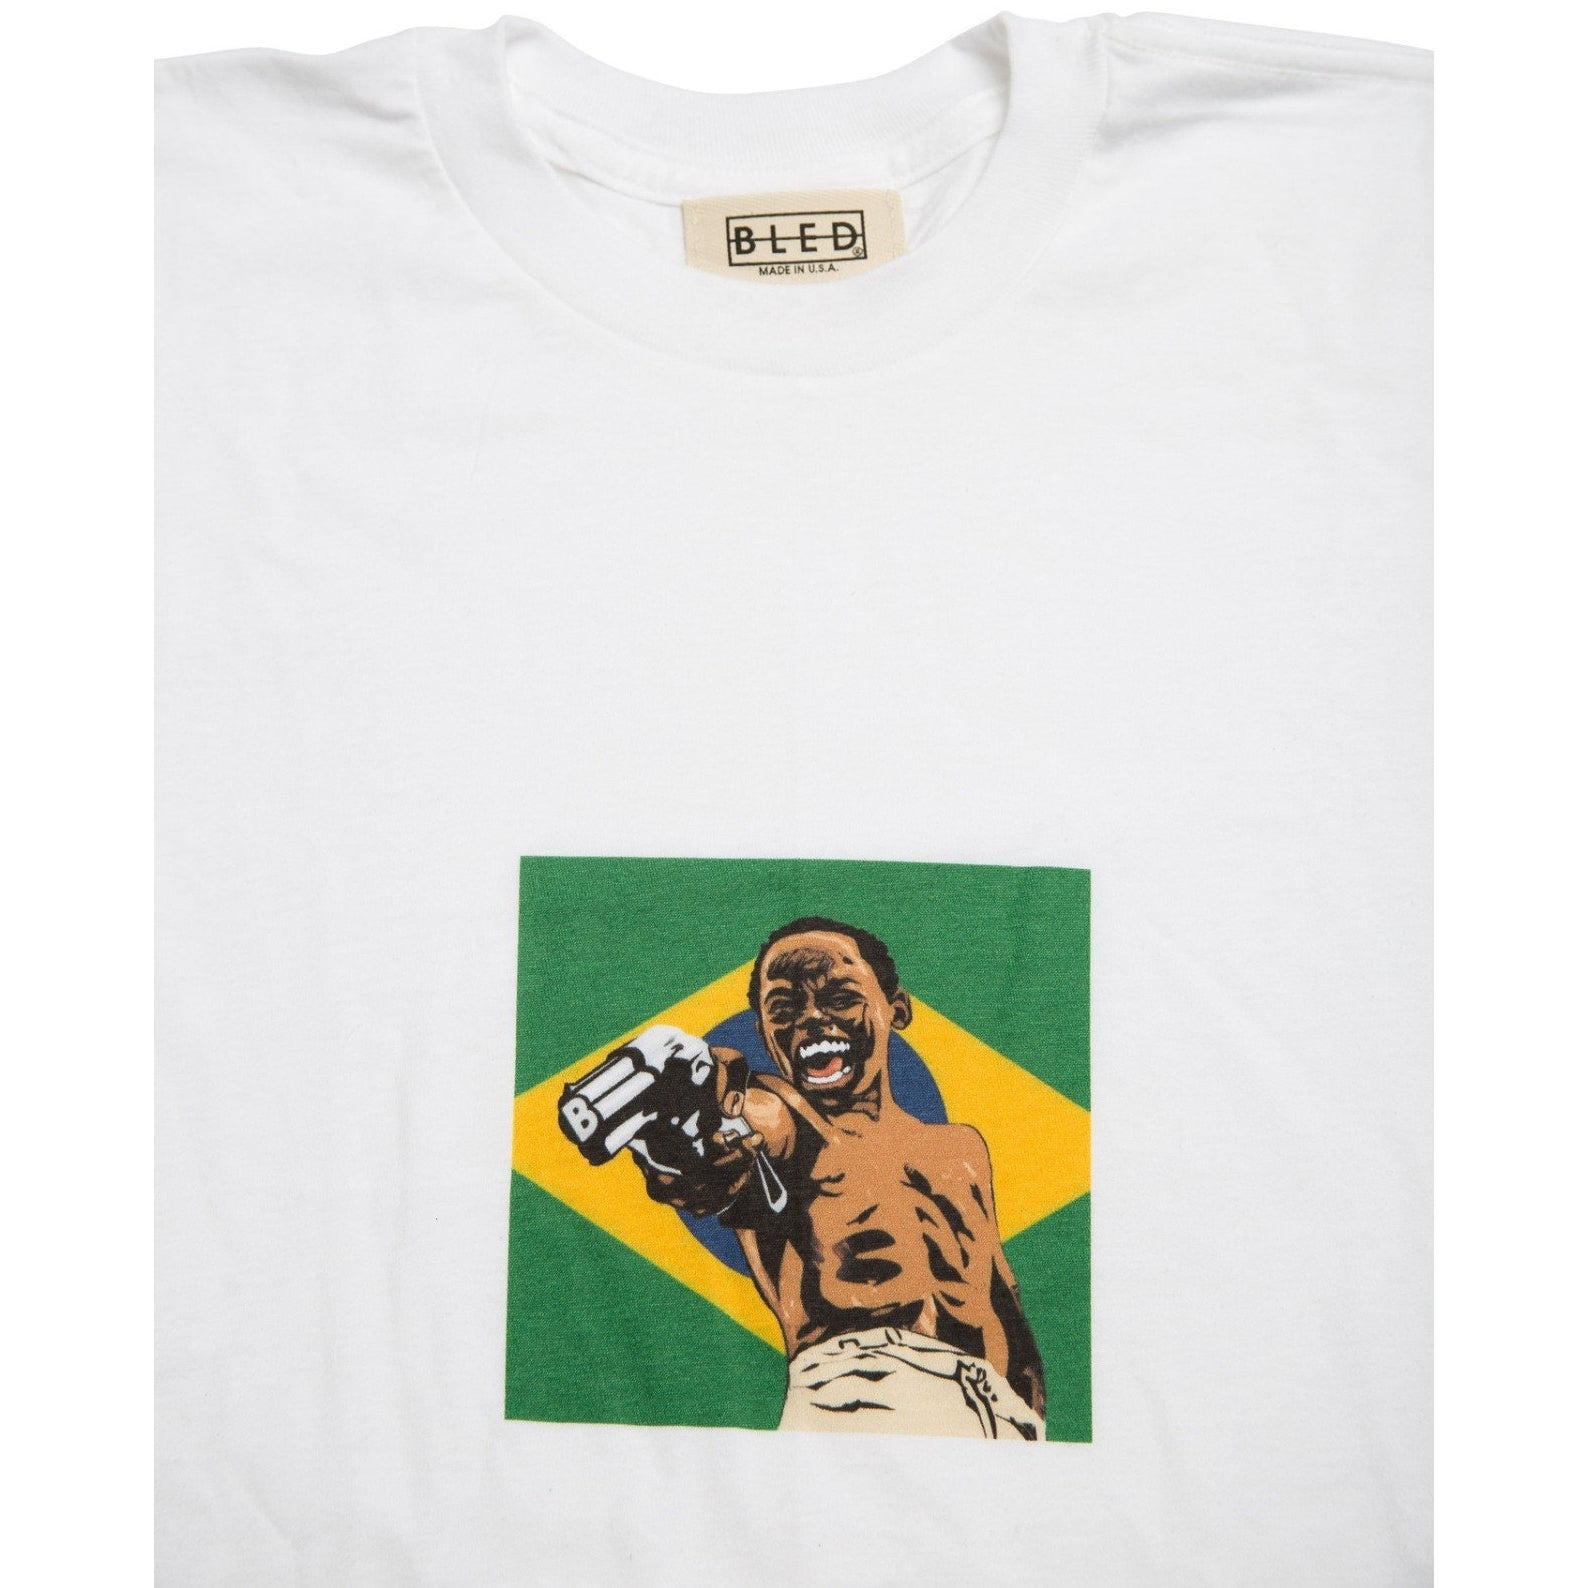 Bled City of God t-shirt featuring a Brazilian flag & Lil Ze blowing someones brains out on the front, but peep the barrel my child. Hype, Streetwear, skate, skateboarding, skateboards, streetwear